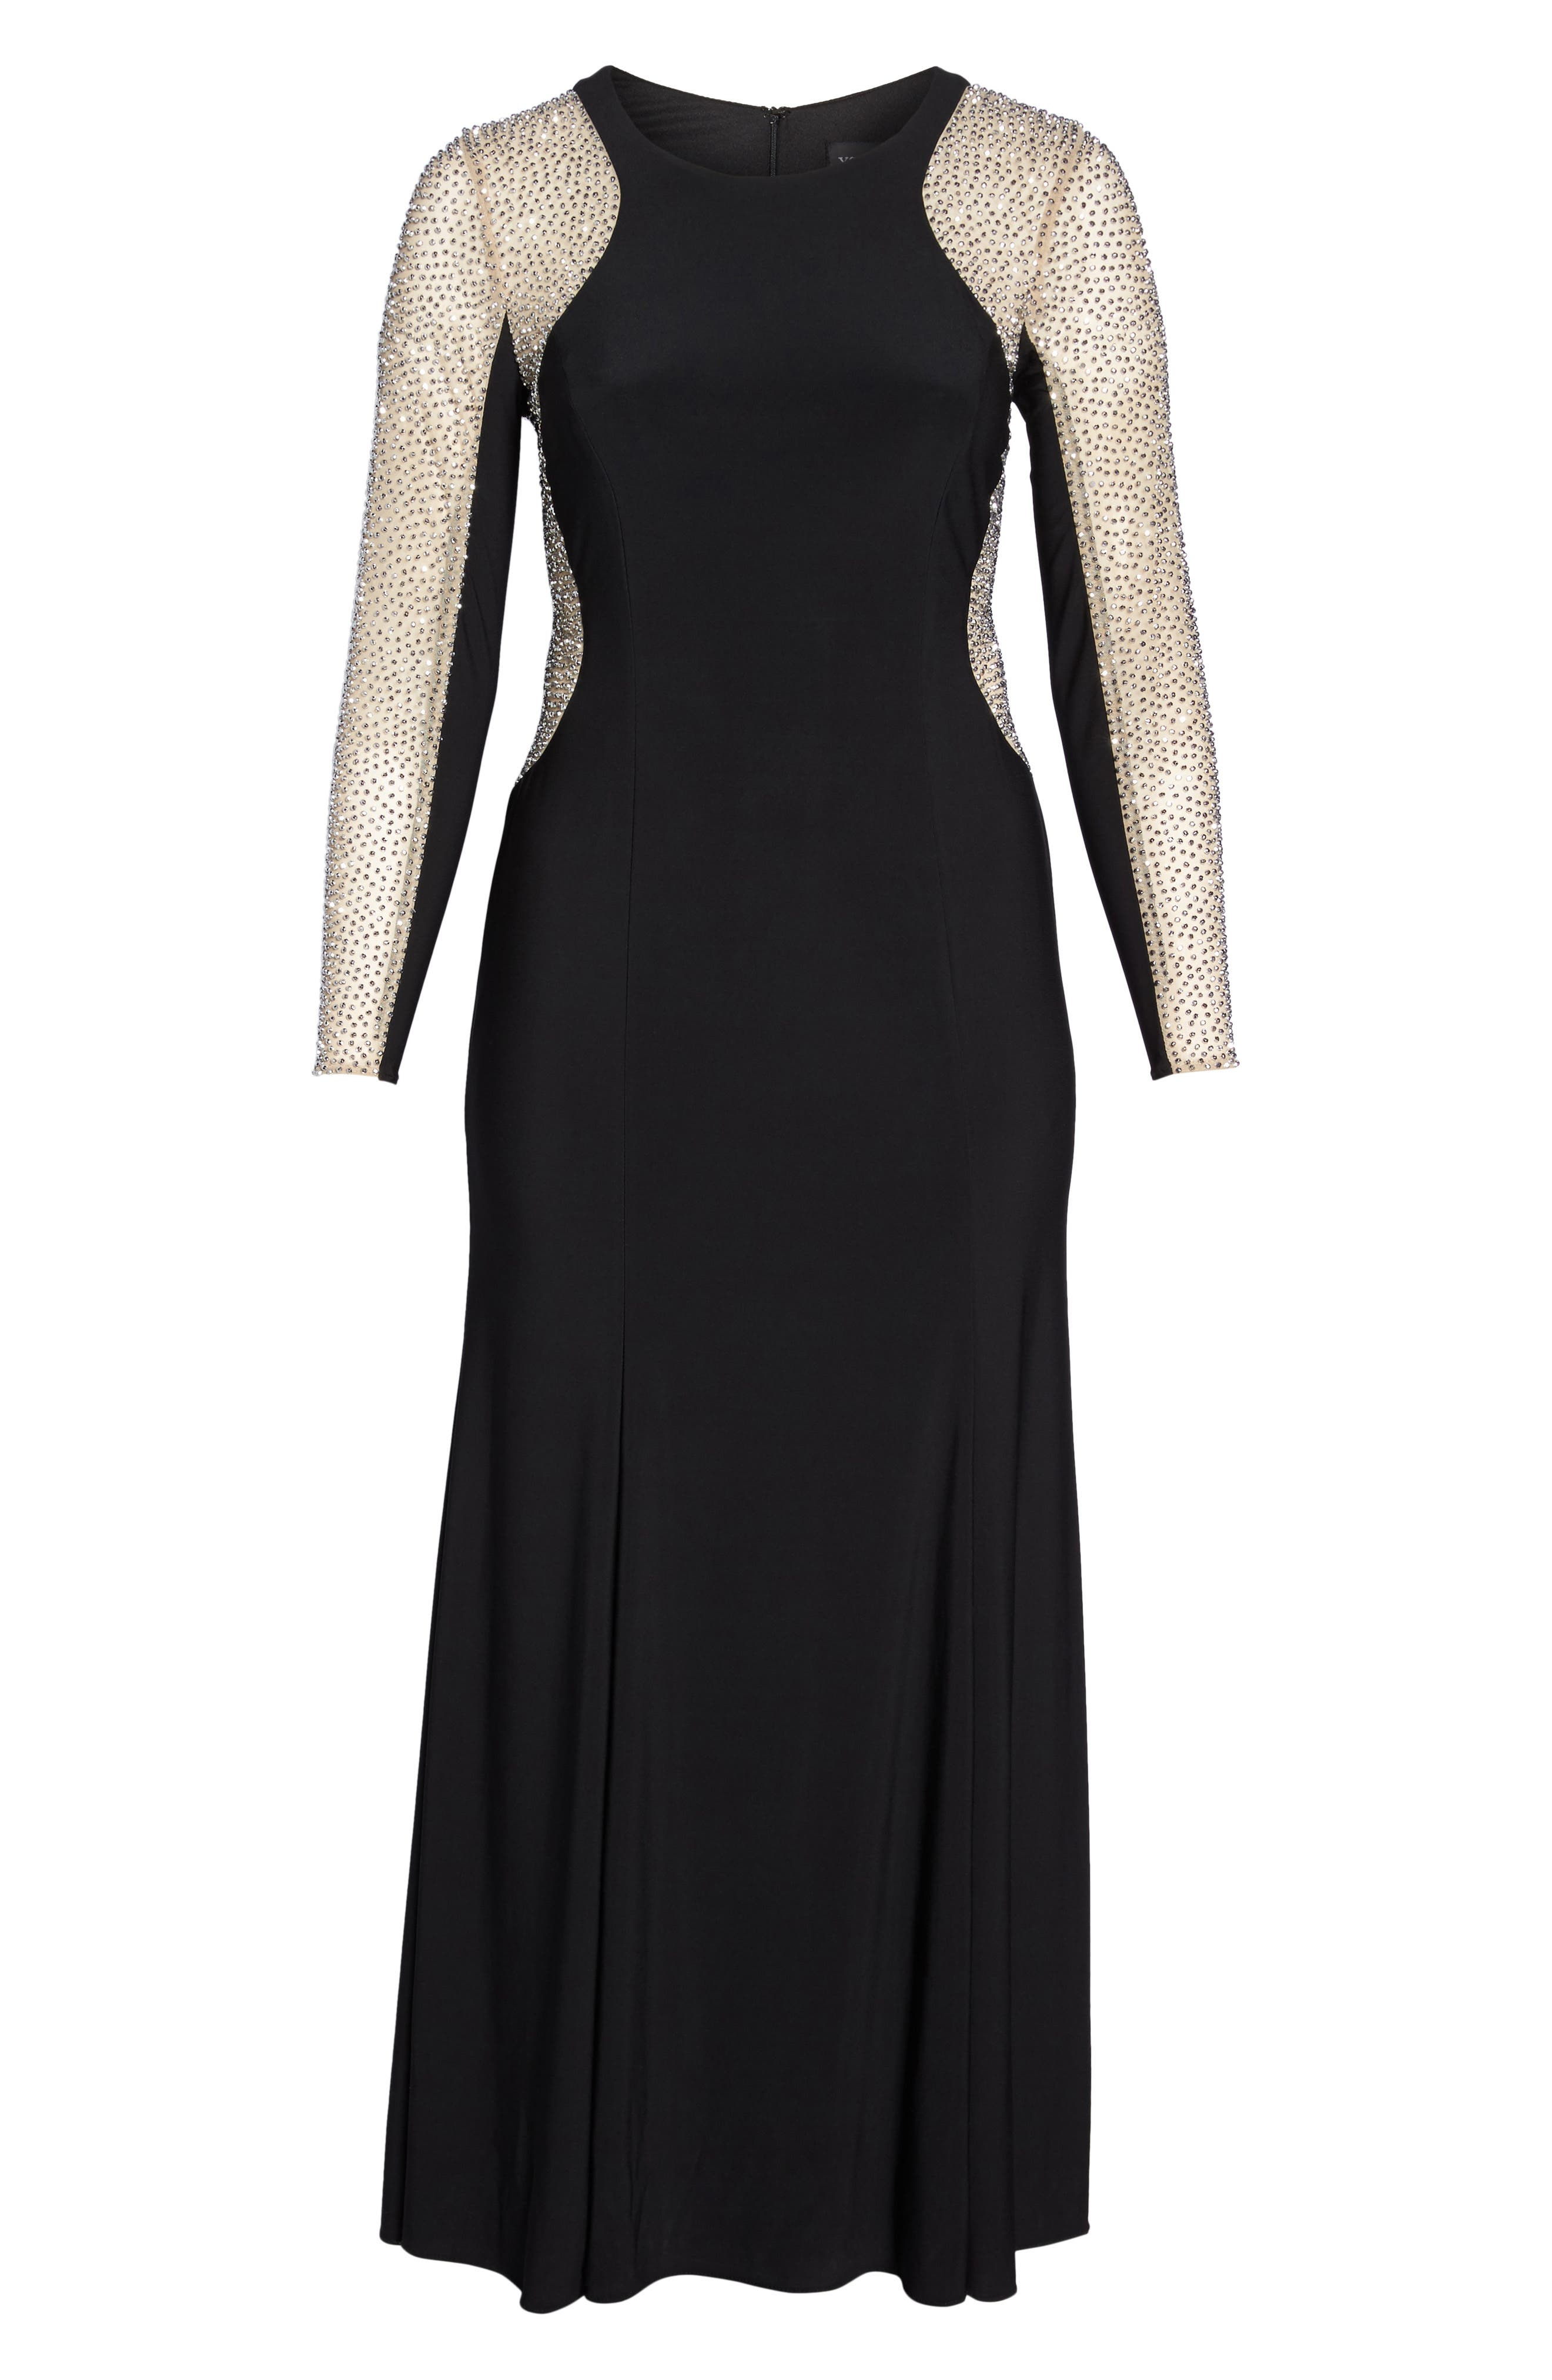 XSCAPE,                             Embellished Jersey Gown,                             Alternate thumbnail 7, color,                             BLACK/ NUDE/ SILVER